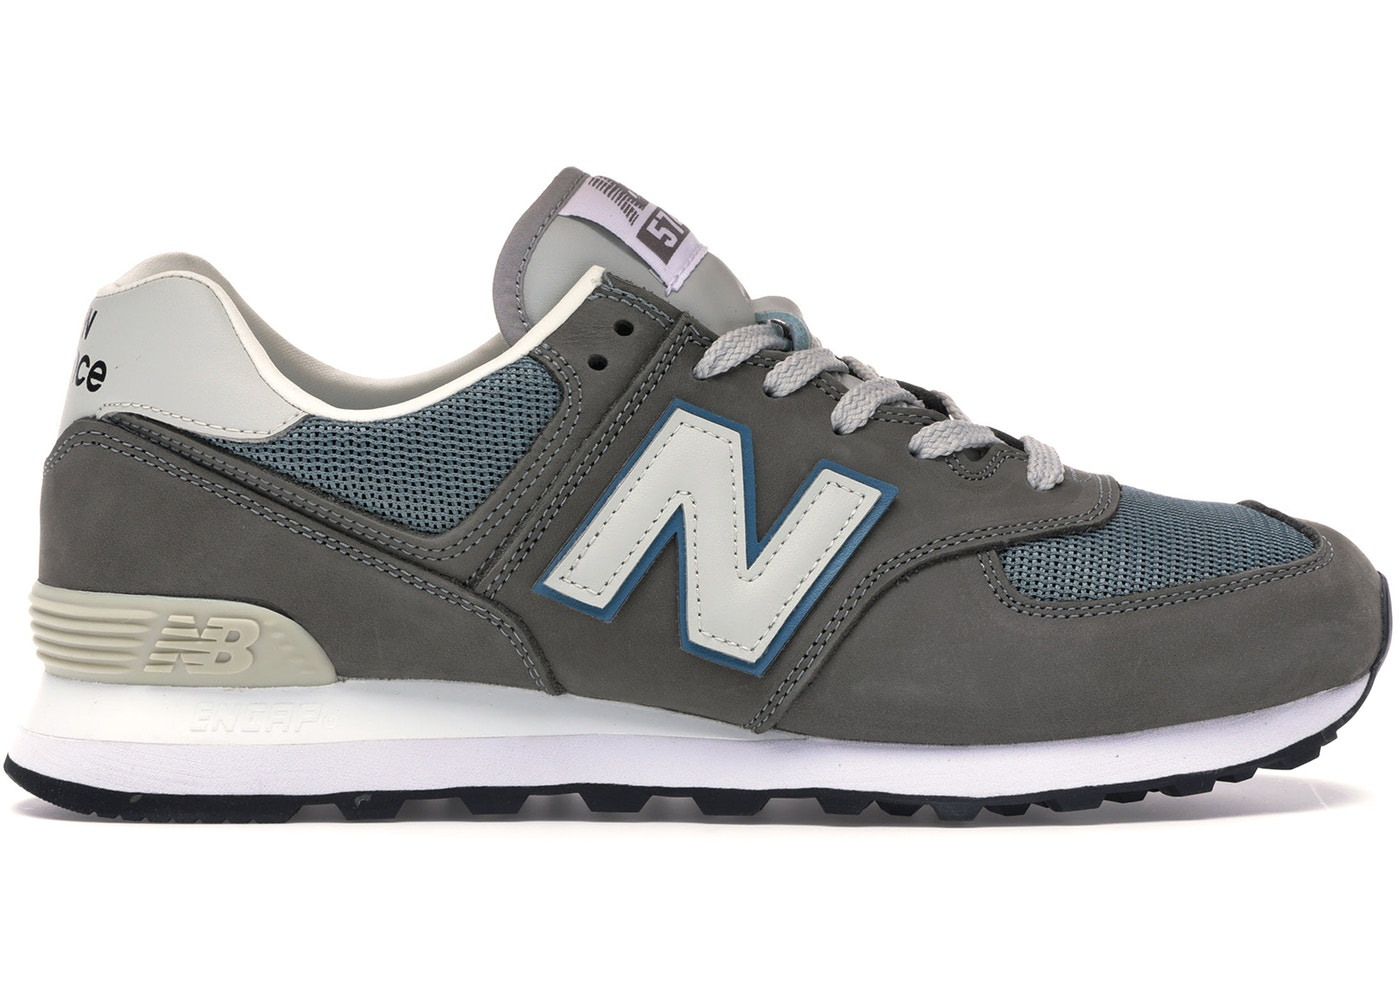 cfc10c8f3c979 Sell. or Ask. Size: 8.5. View All Bids. New Balance 574 Grey Day ...